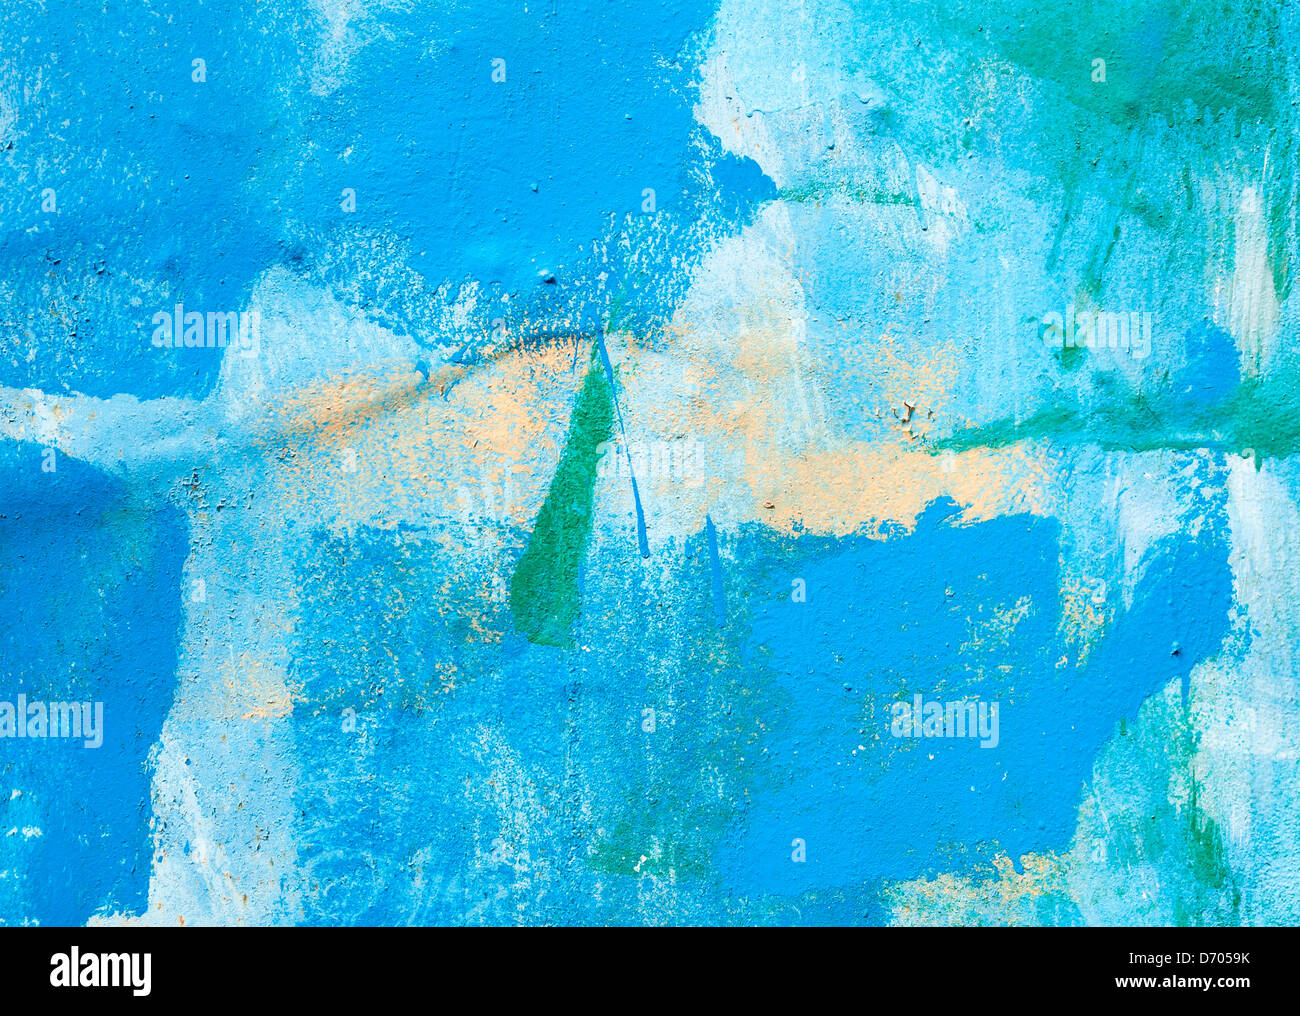 Metal surfaces painted with multicolored paint abstract background - Stock Image